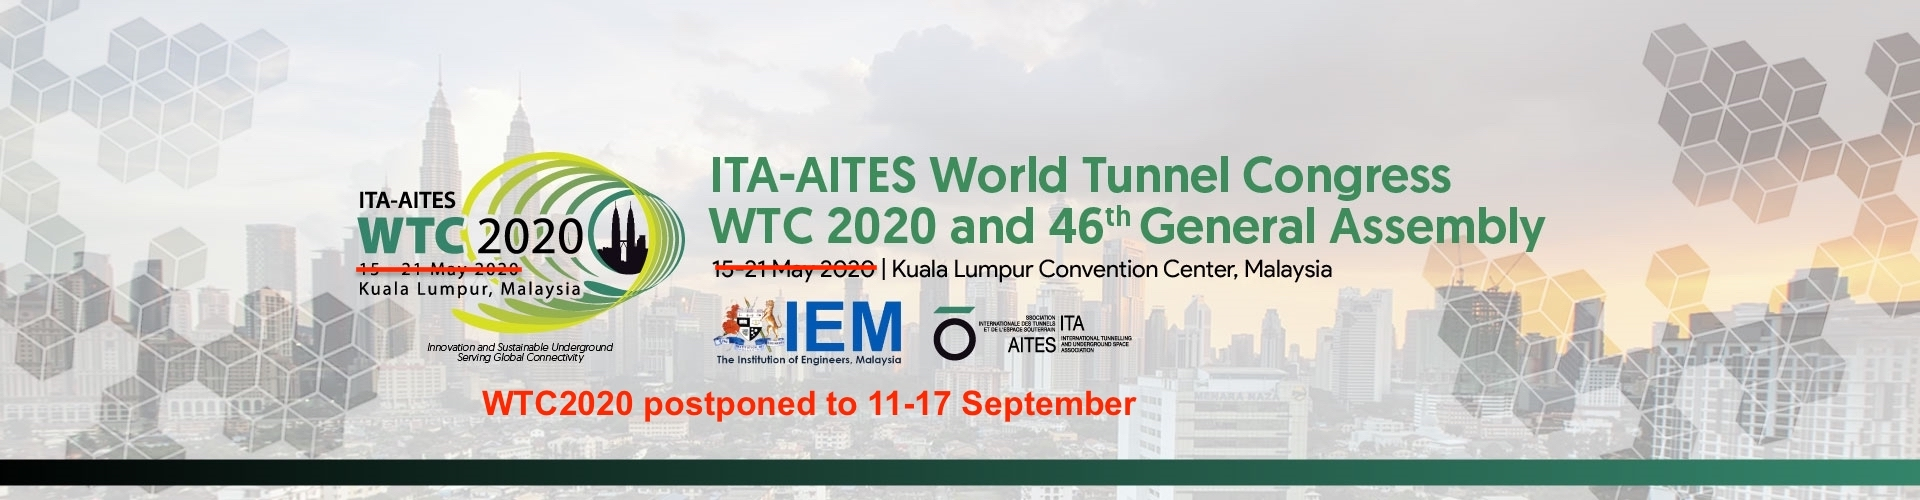 WTC2020 postponed from May to September 20